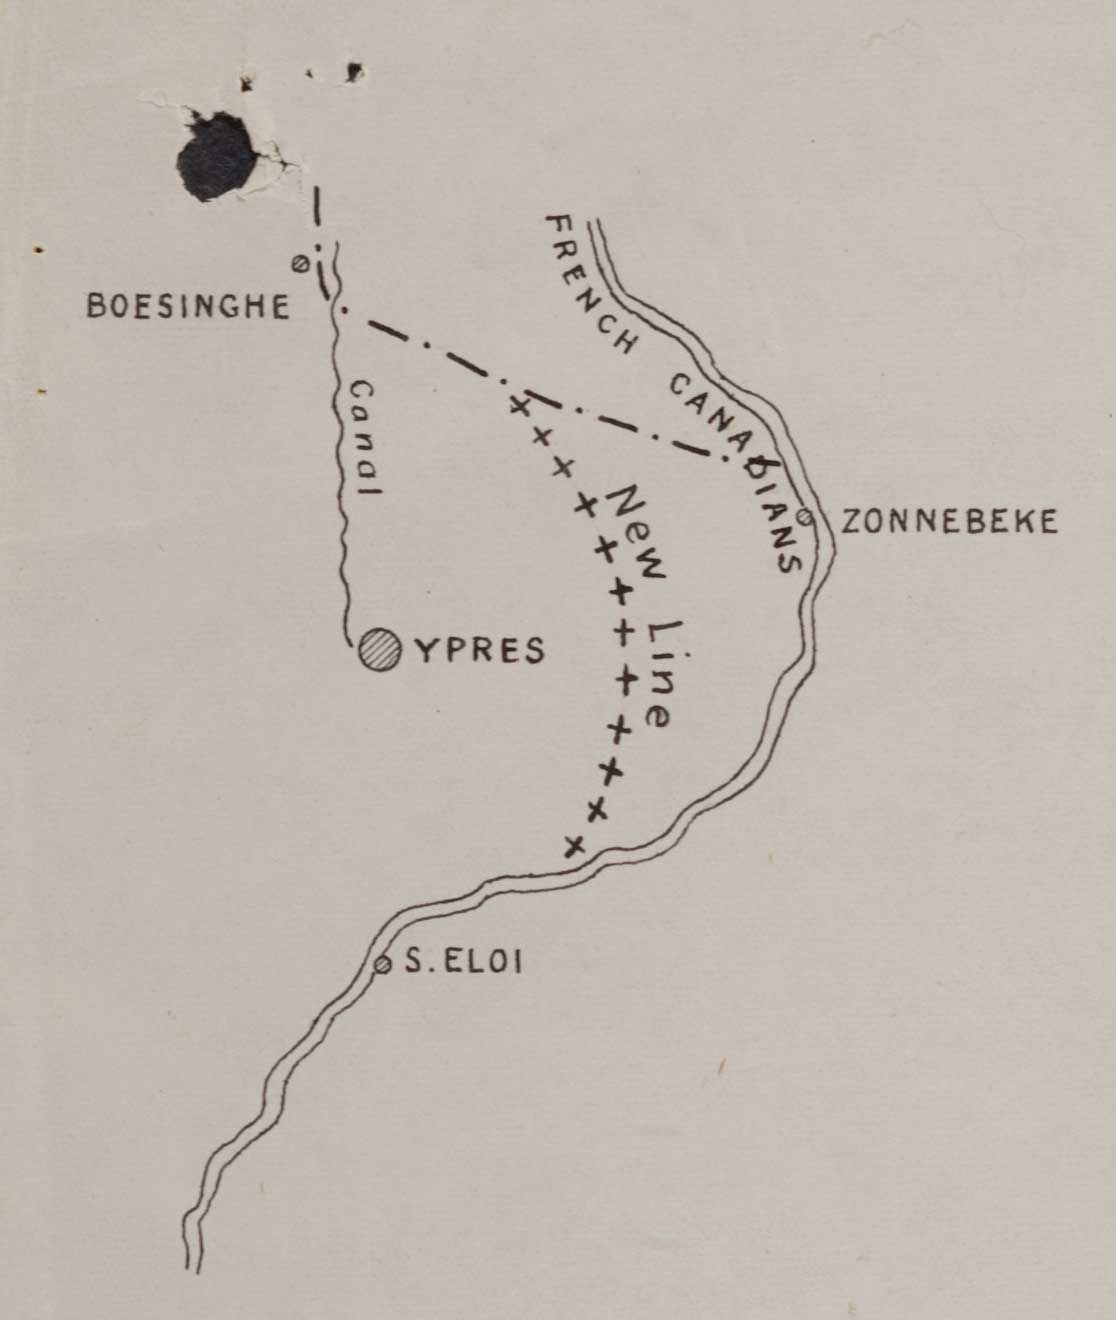 Sketch showing Boesinghe, taken from 1st Battalion Hampshire's War Diary. Catalogue reference W0 95/1495